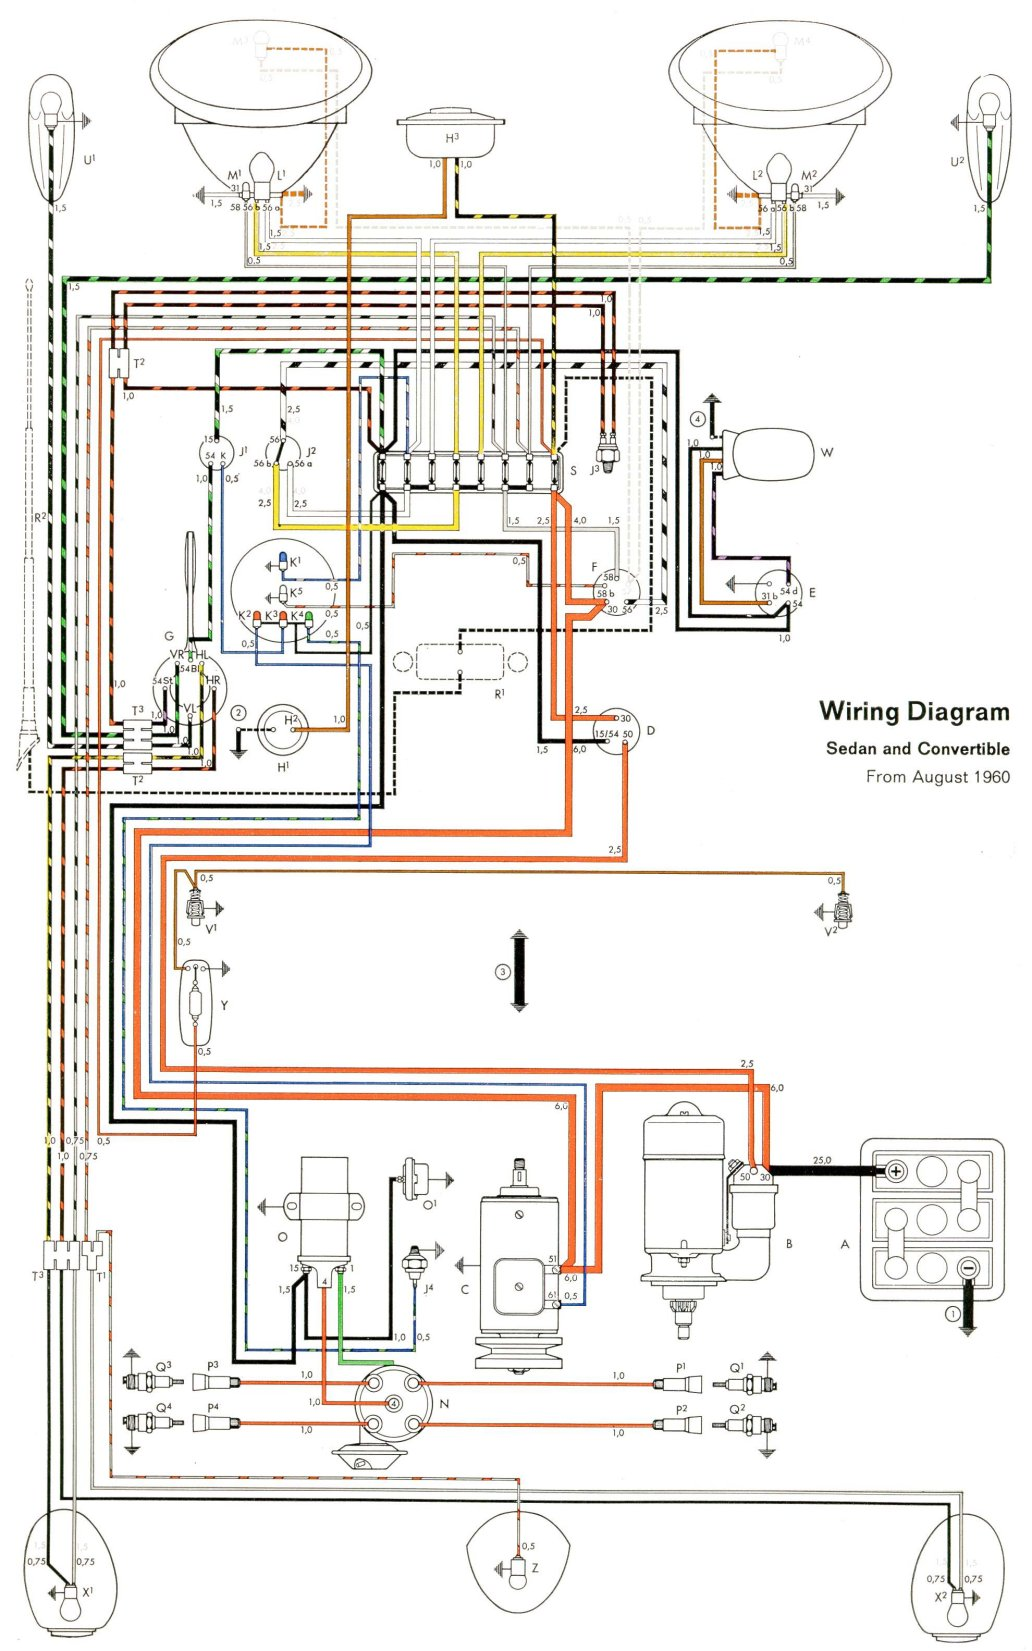 Vw Wiring Harness Diagram Will Be A Thing Volkswagen Beetle Radio Thesamba Com Type 1 Diagrams Rh Bug